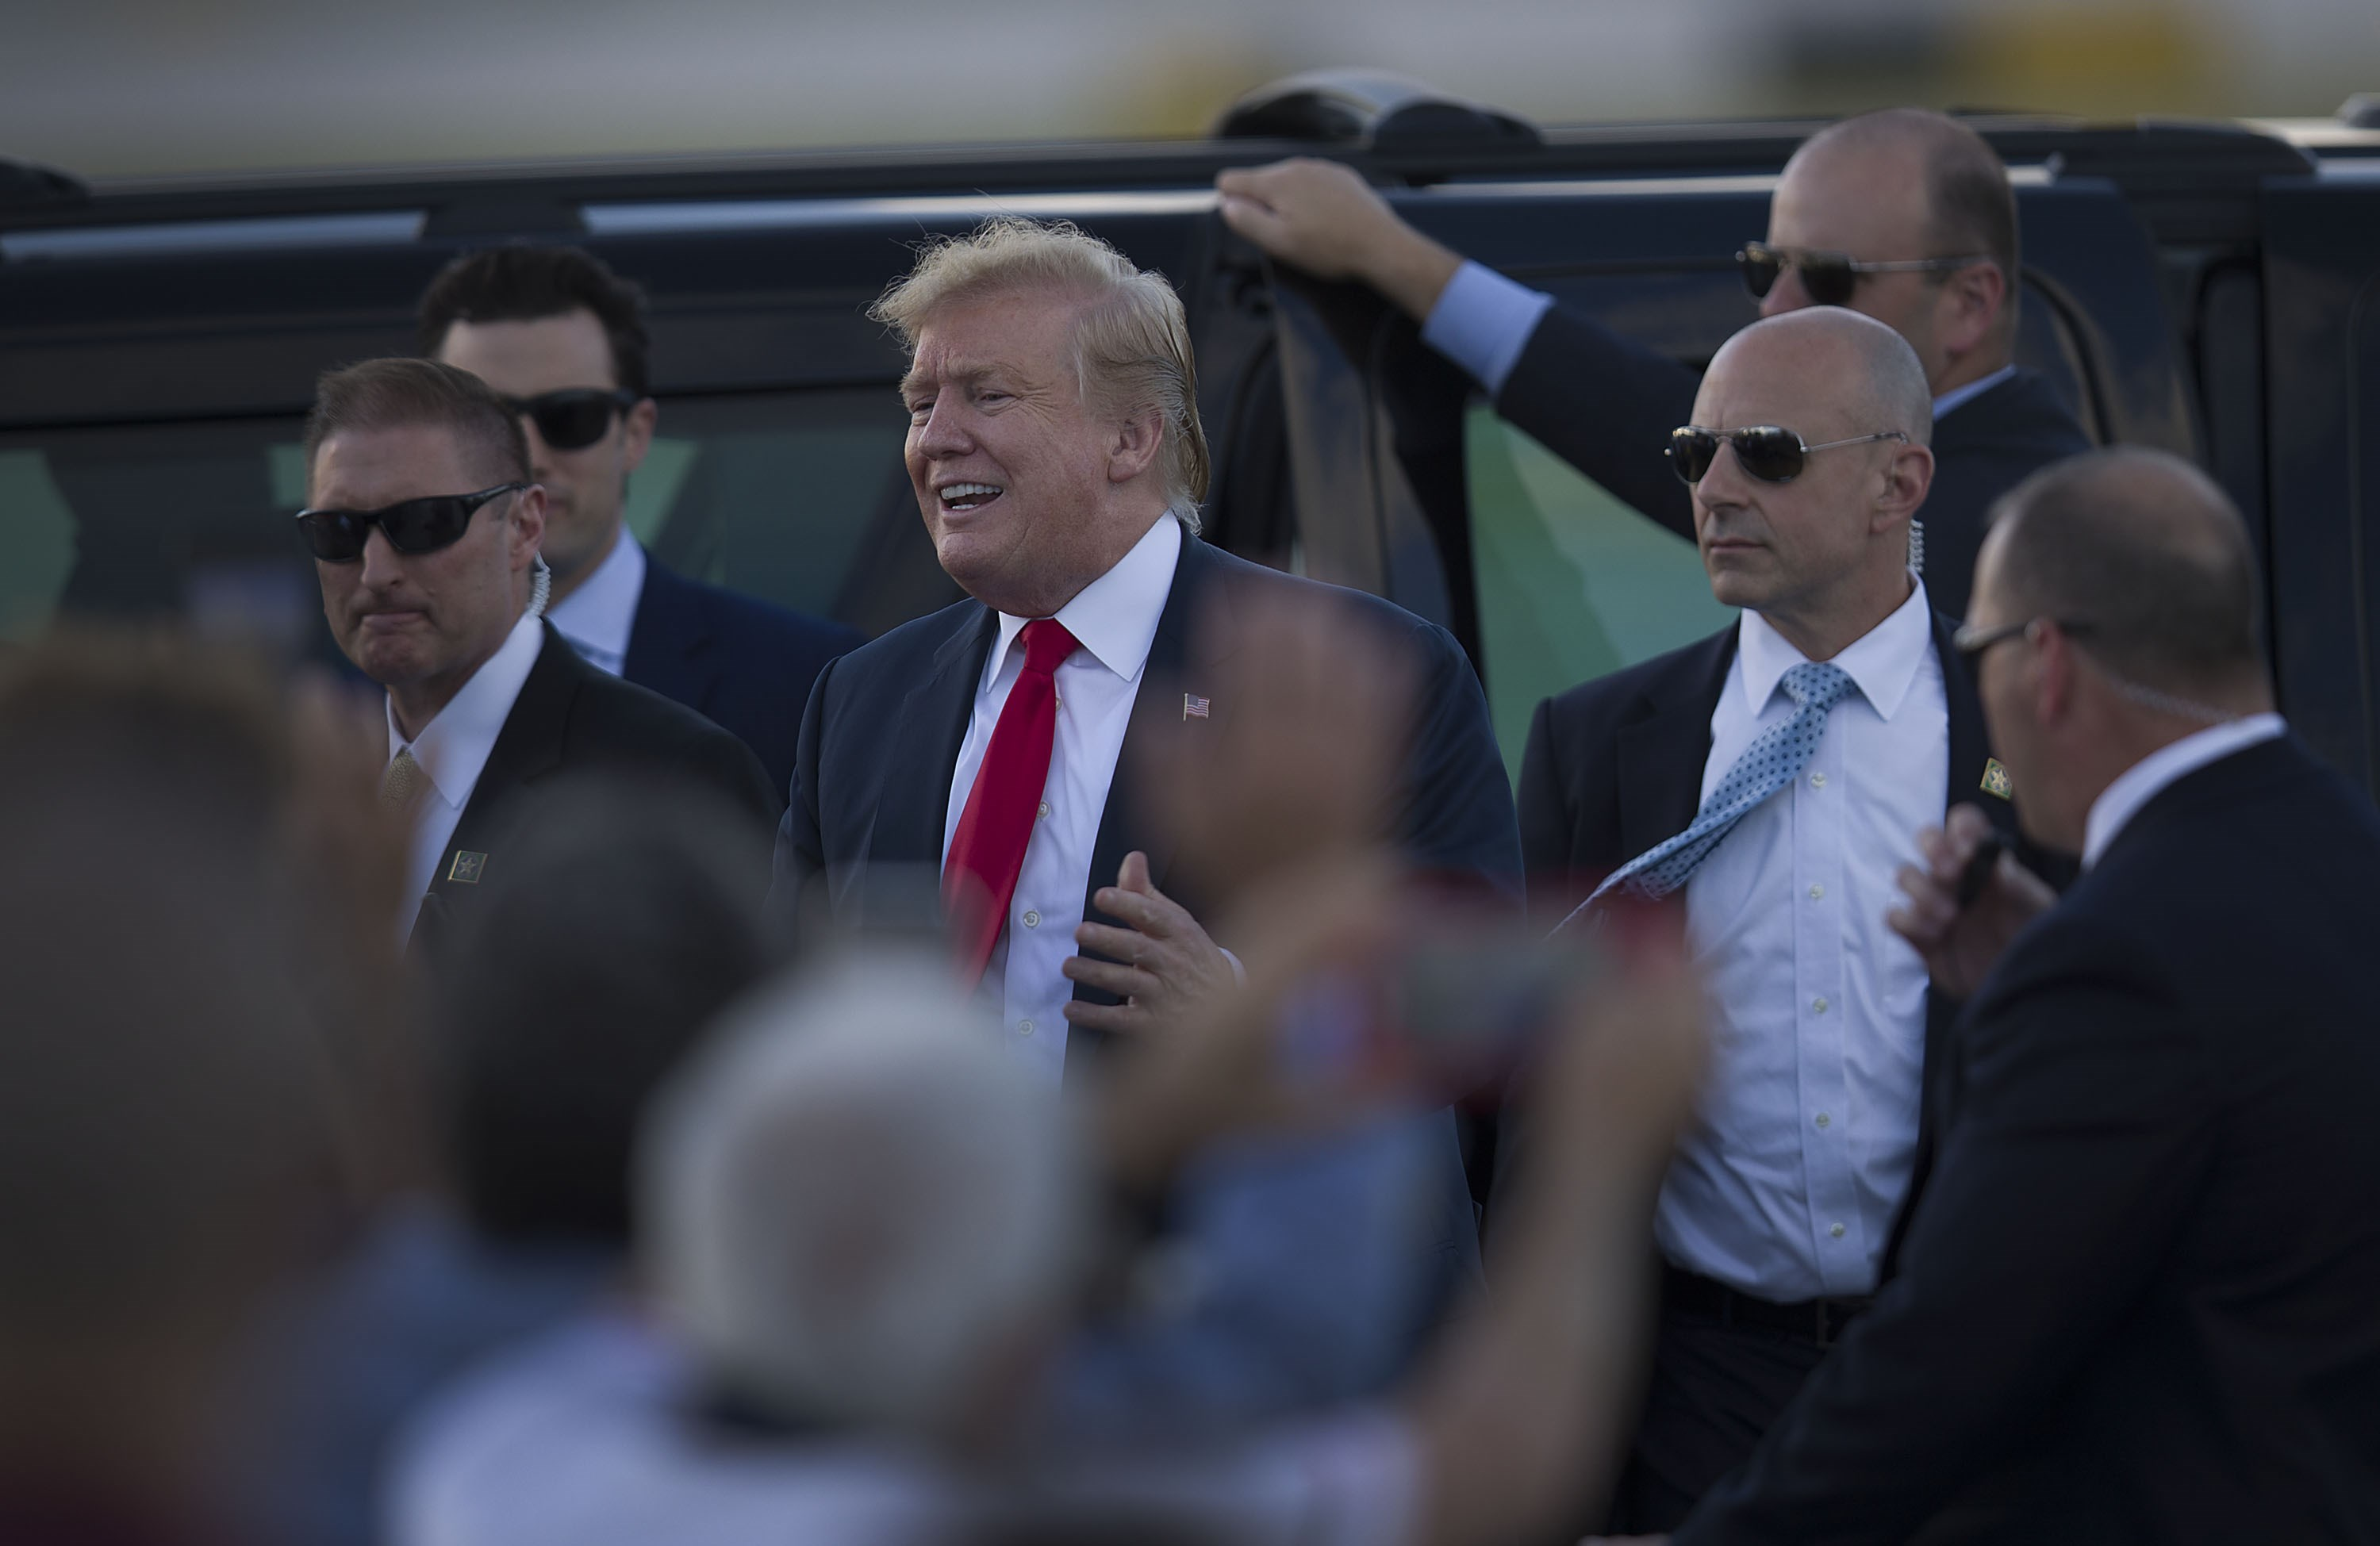 WEST PALM BEACH, FLORIDA - APRIL 18: US President Donald Trump greets supporters after arriving on Air Force One at the Palm Beach International Airport to spend Easter weekend at his Mar-a-Lago resort on April 18, 2019 in West Palm Beach, Florida. President Trump arrived as the report from special counsel Robert S. Mueller III was released by Attorney General William P. Bar earlier today in Washington, DC.   Joe Raedle/Getty Images/AFP == FOR NEWSPAPERS, INTERNET, TELCOS & TELEVISION USE ONLY ==